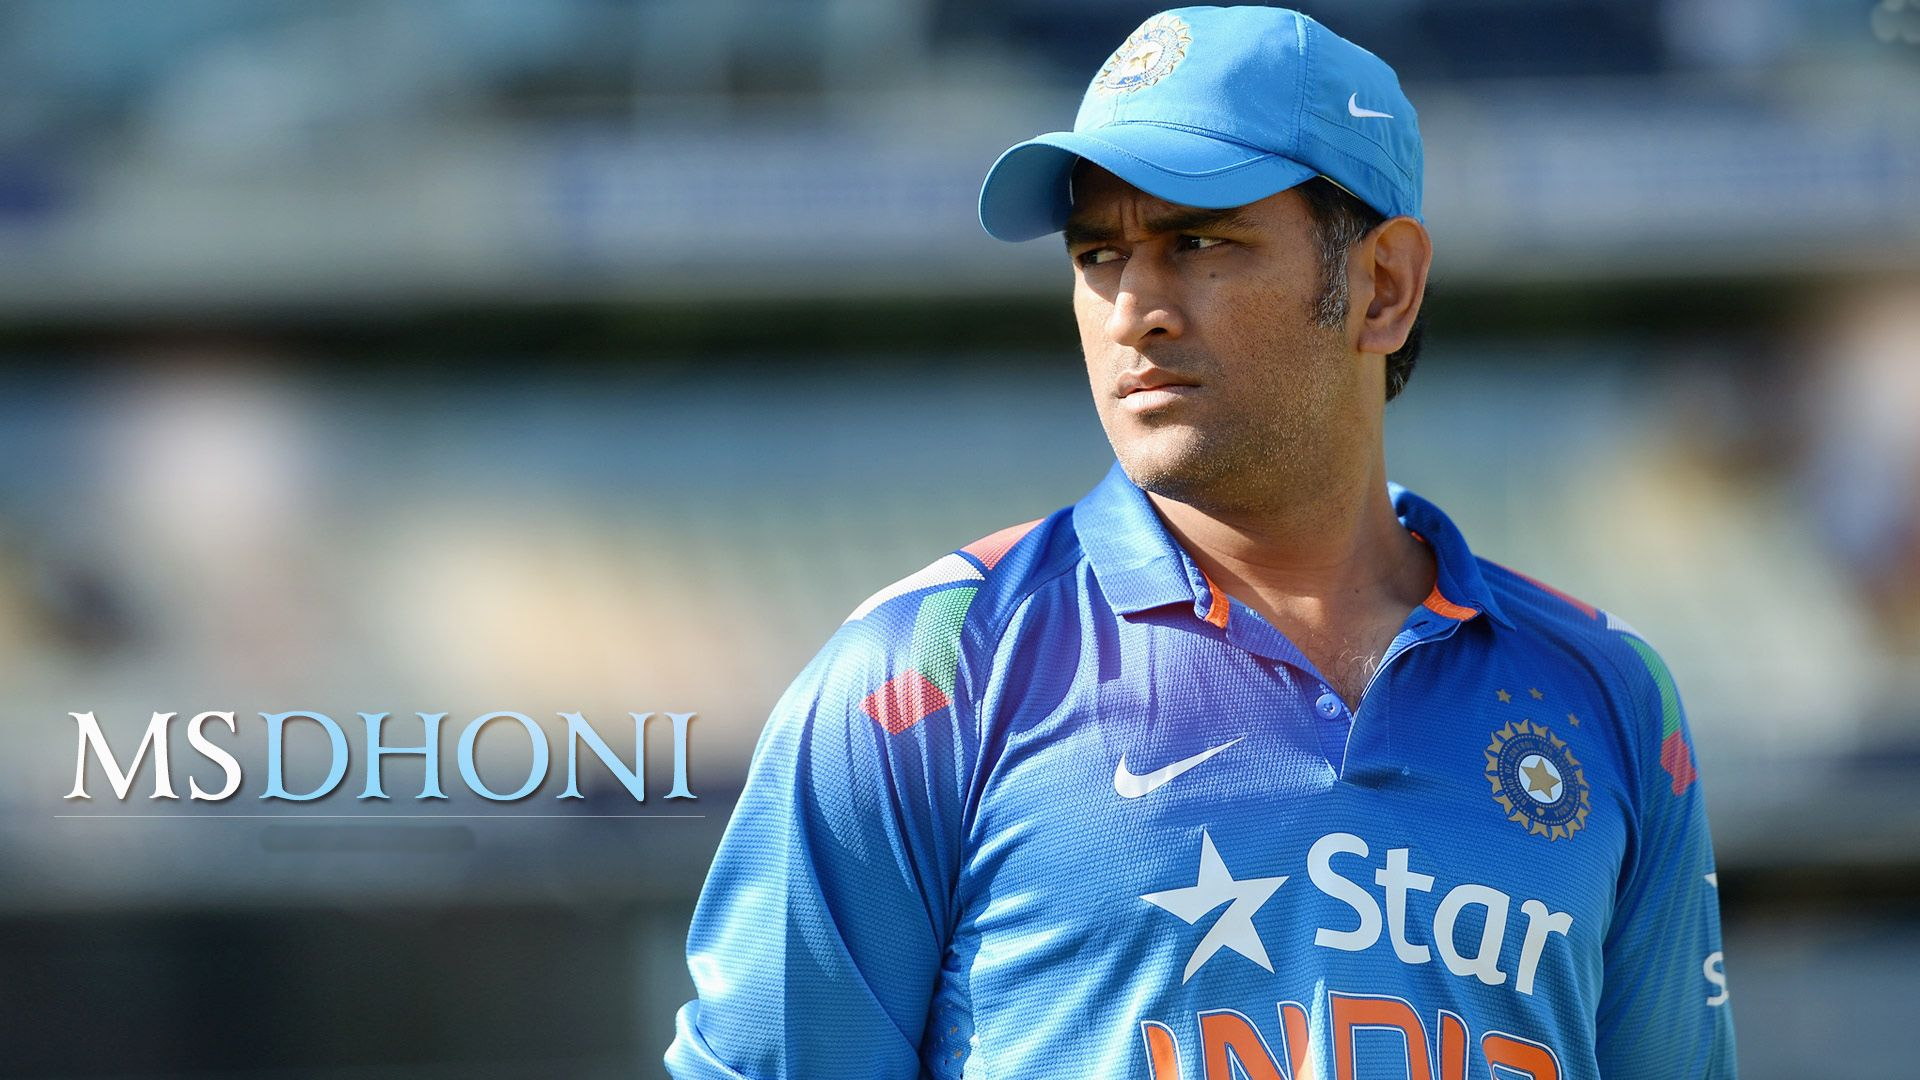 MS Dhoni HD Images Dhoni wallpapers, Ms dhoni wallpapers